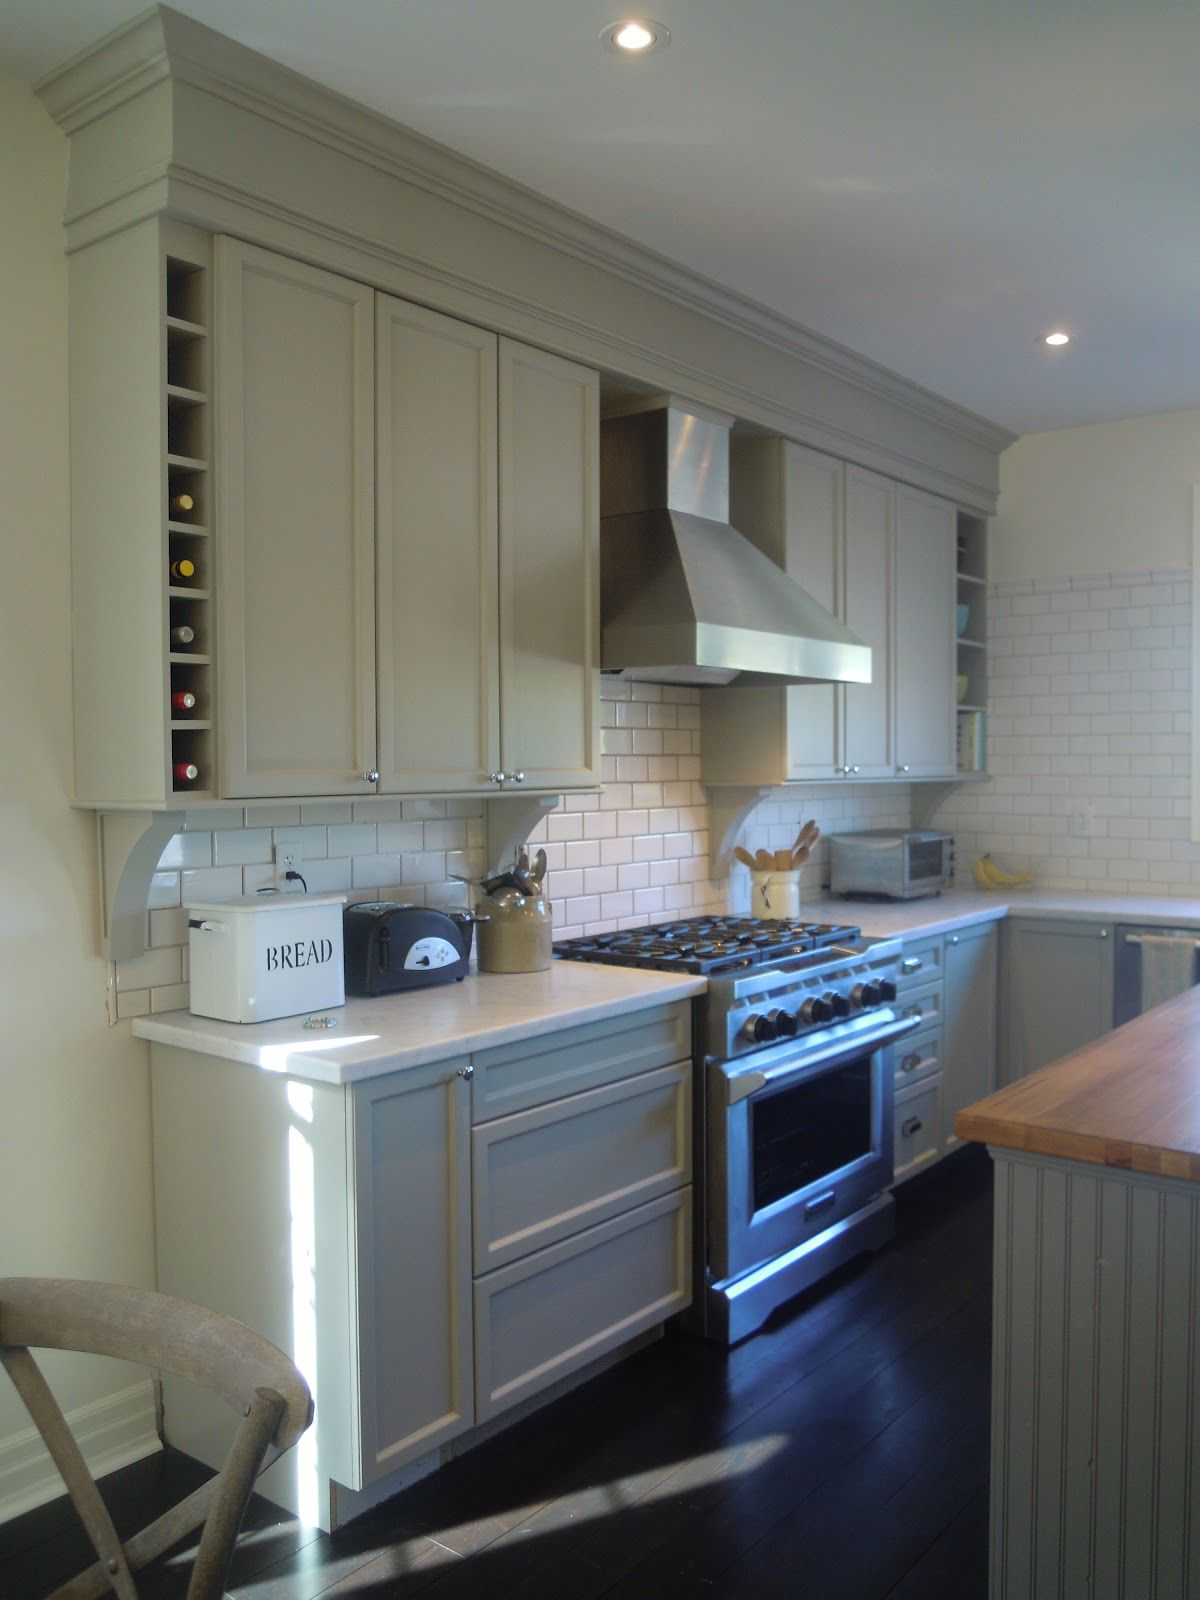 Mouldings crown moulding above kitchen cabinets to create the